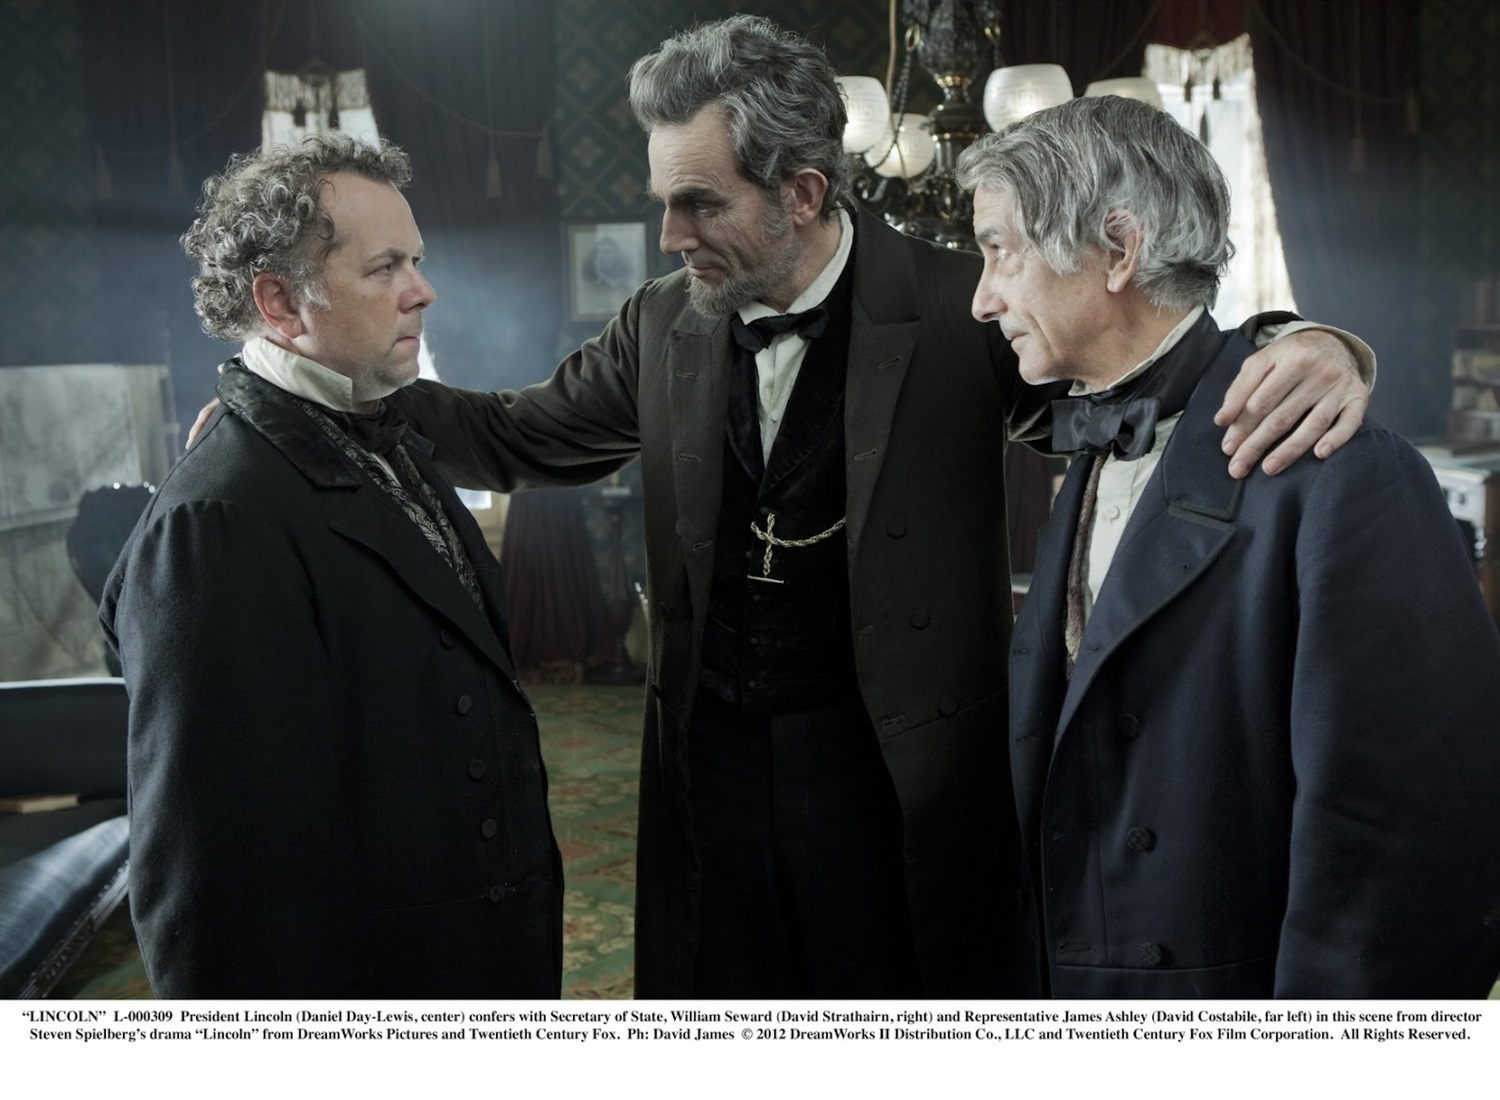 """Abraham Lincoln (Daniel Day-Lewis, center) consults with James Ashley (David Costible, left) and William Seward (David Strathairn, right) in Steven Spielberg's drama """"Lincoln"""" from DreamWorks Pictures and Twentieth Century Fox."""